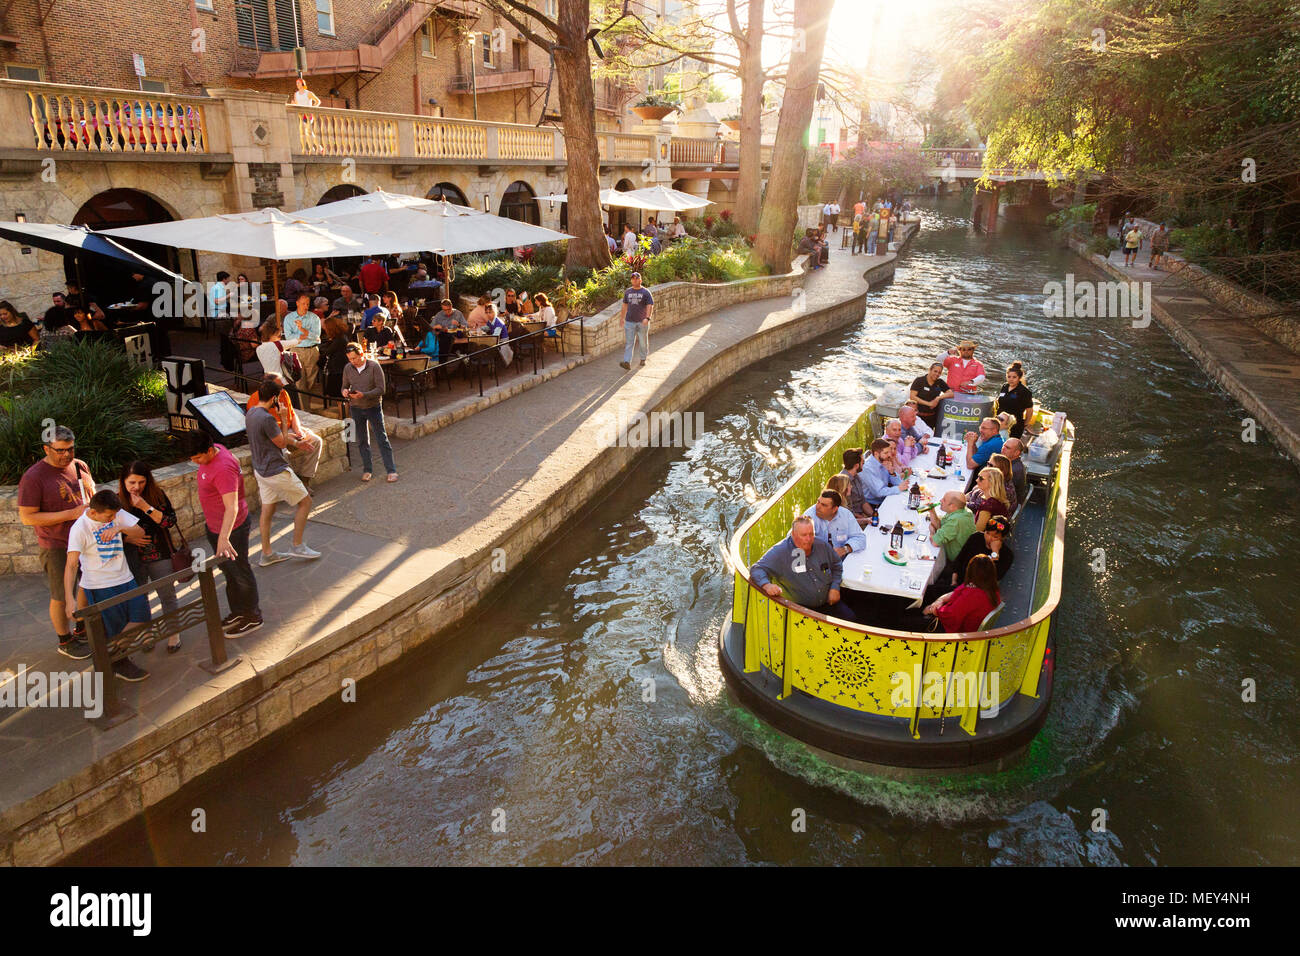 Travellers dine on a barge on the San Antonio river; San Antonio River Walk, San Antonio, Texas USA - Stock Image